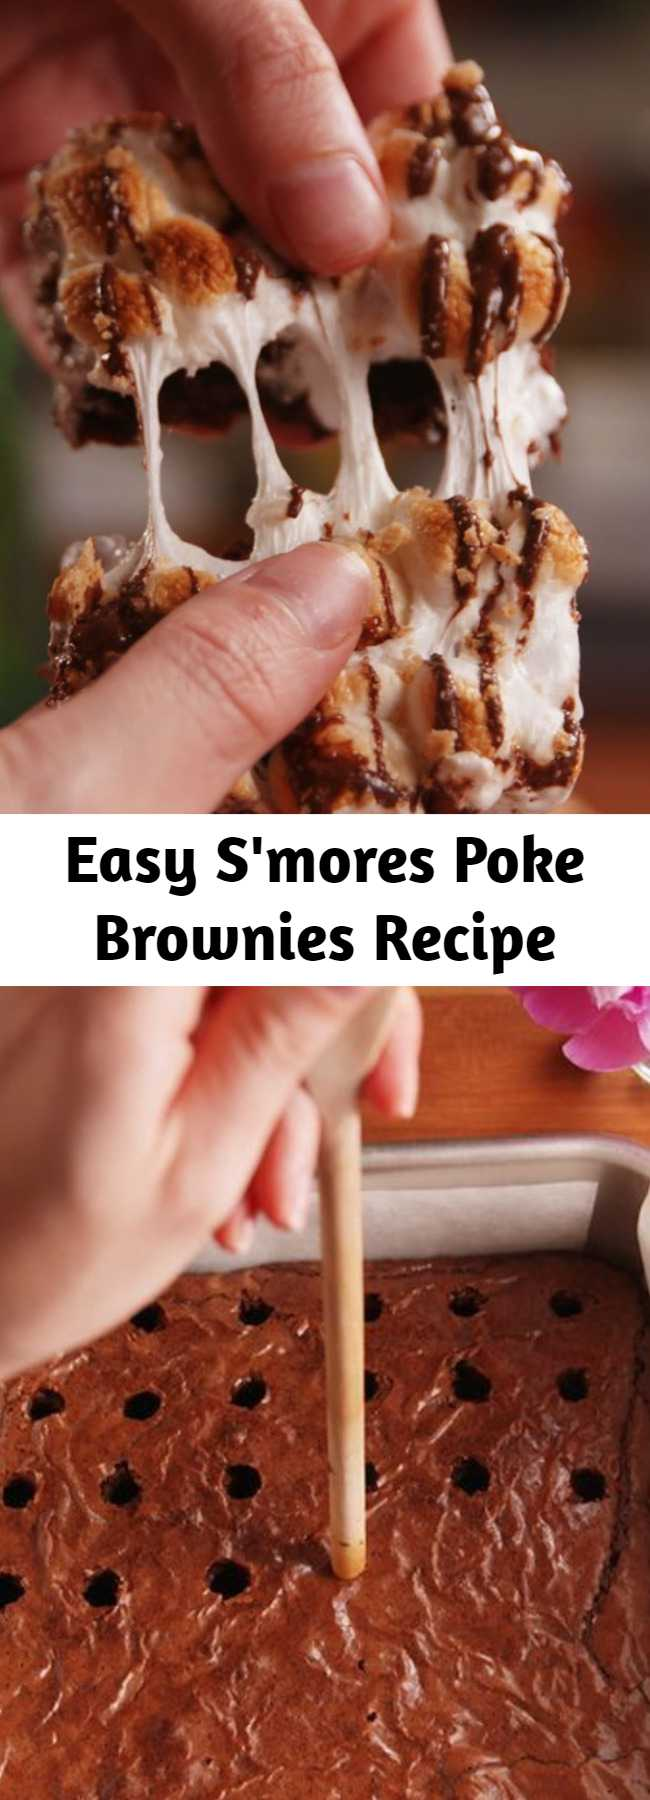 Easy S'mores Poke Brownies Recipe - Just when we thought we had seen every type of s'more possible this one blew us away. Brownies get poked AND topped with marshmallows and then drizzled with chocolate. We are in love.